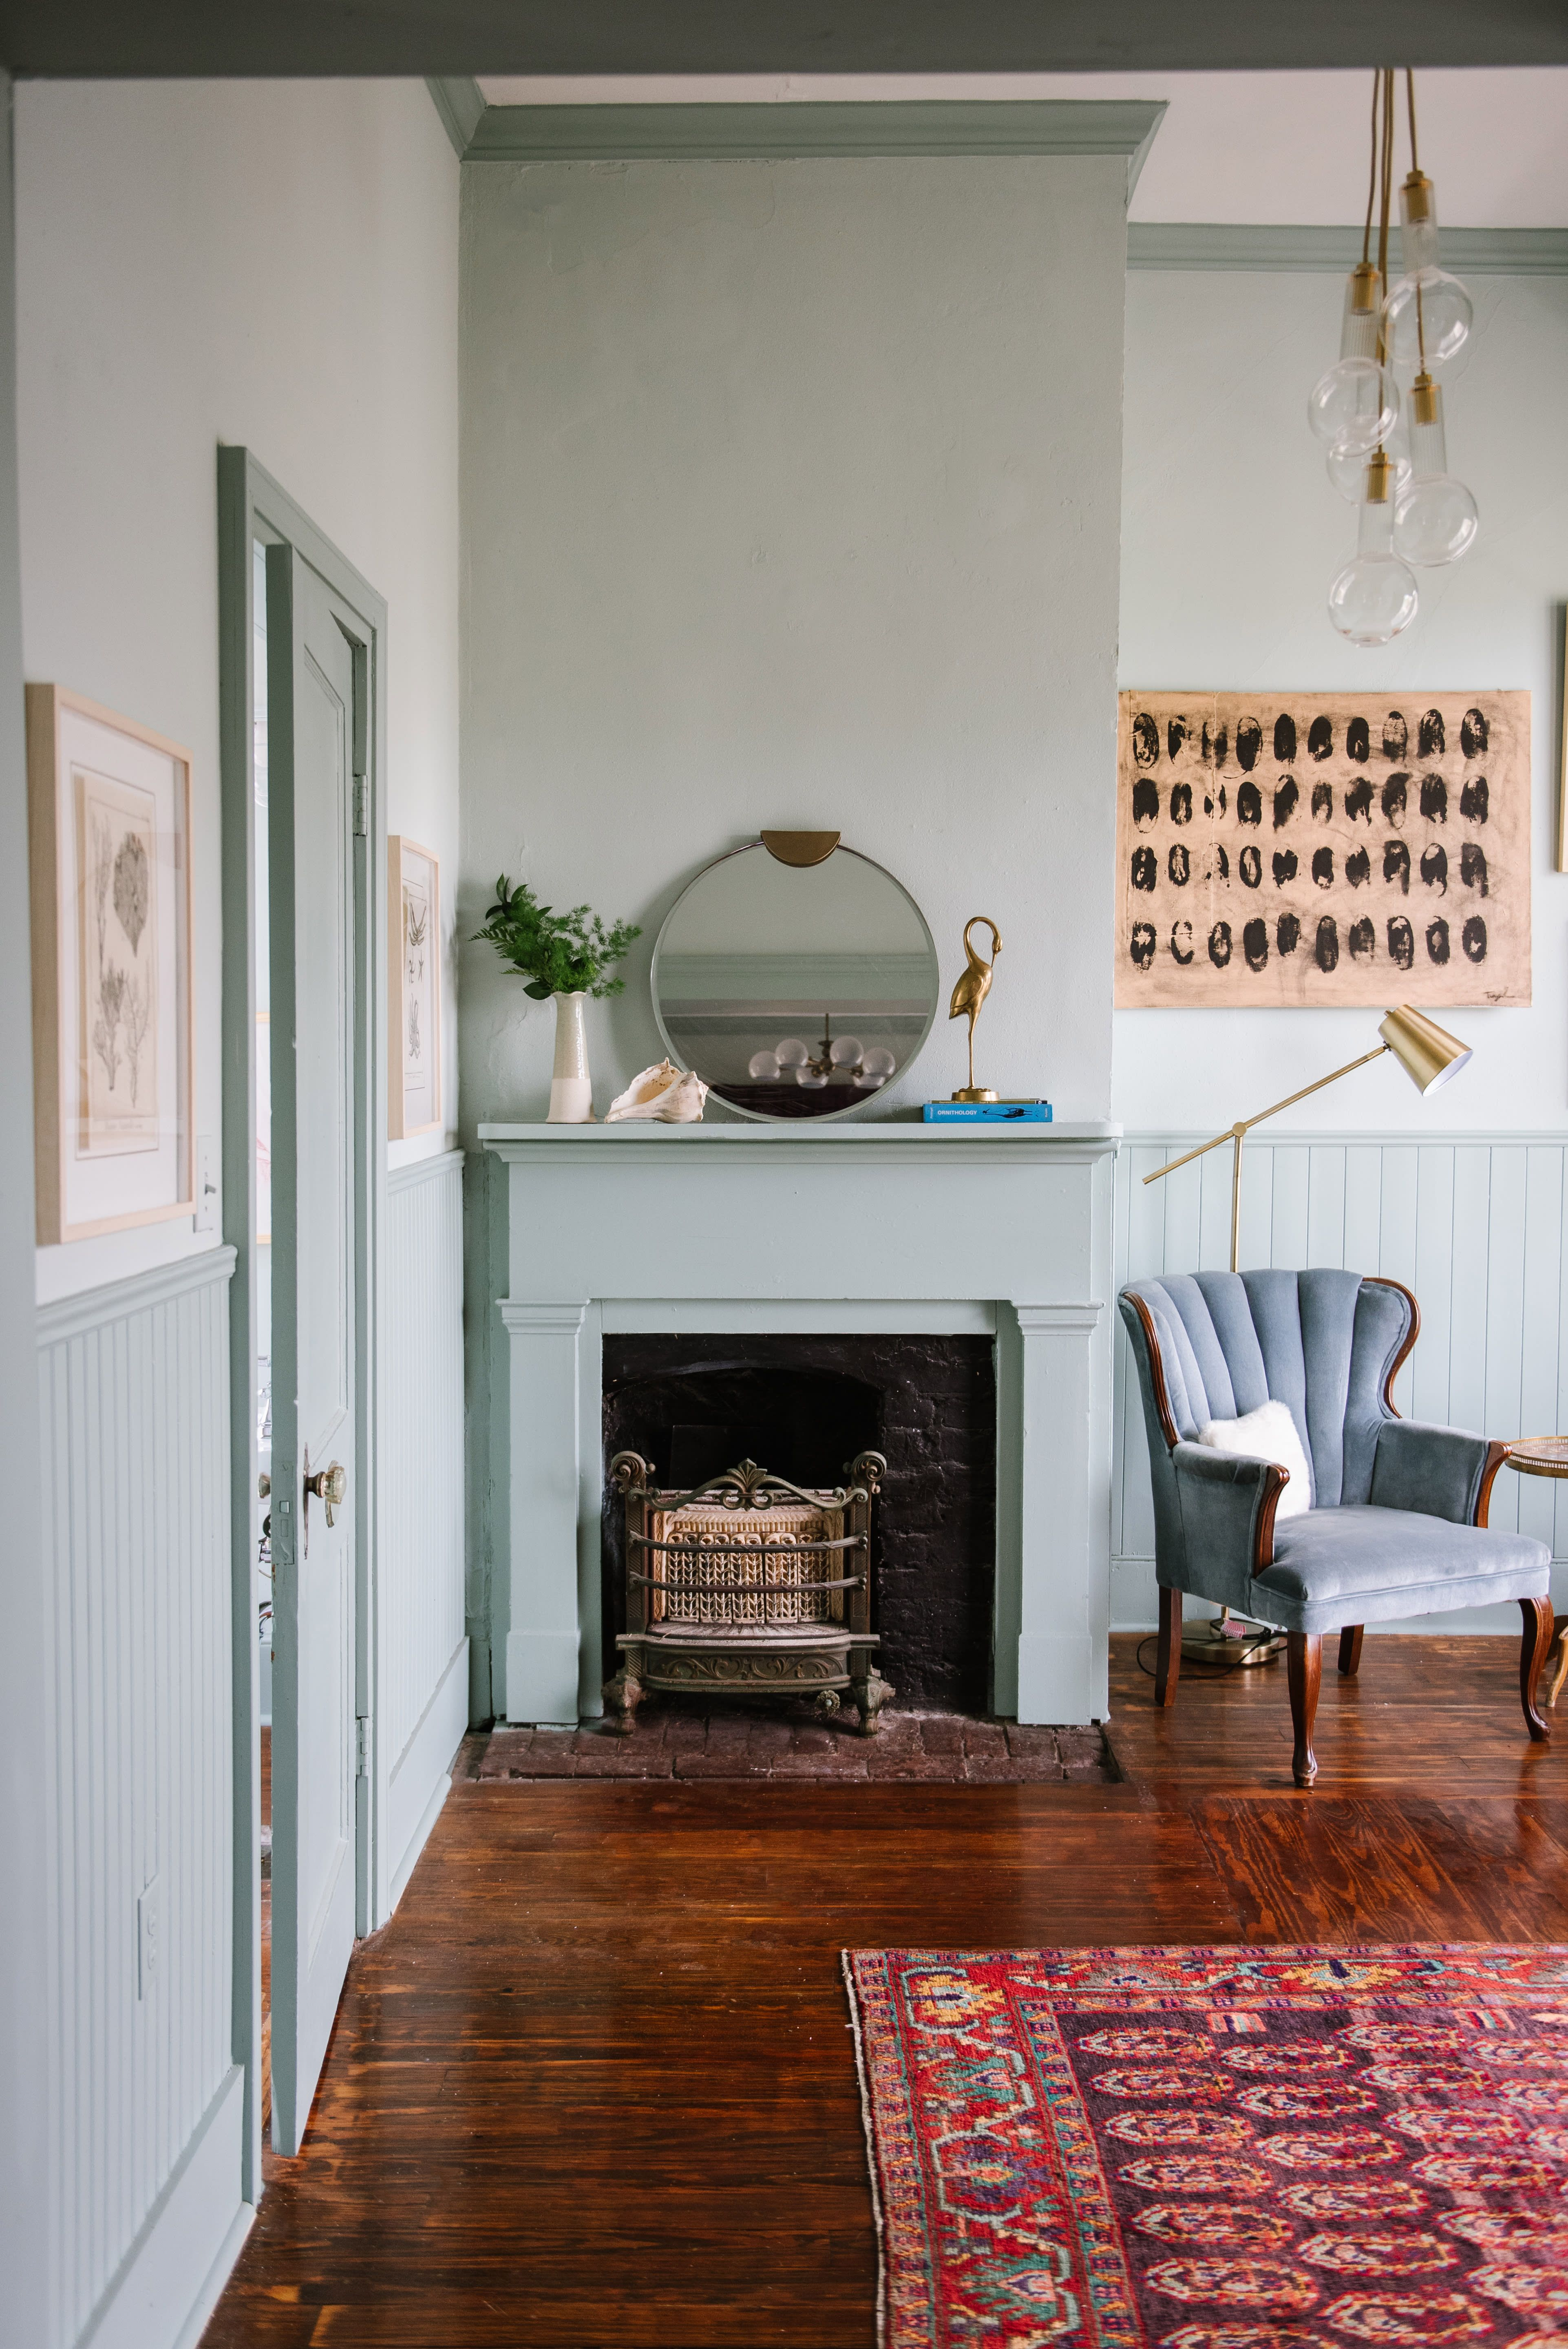 A Historic 1800 Texas Home Gets A Second Life As A Bed Breakfast